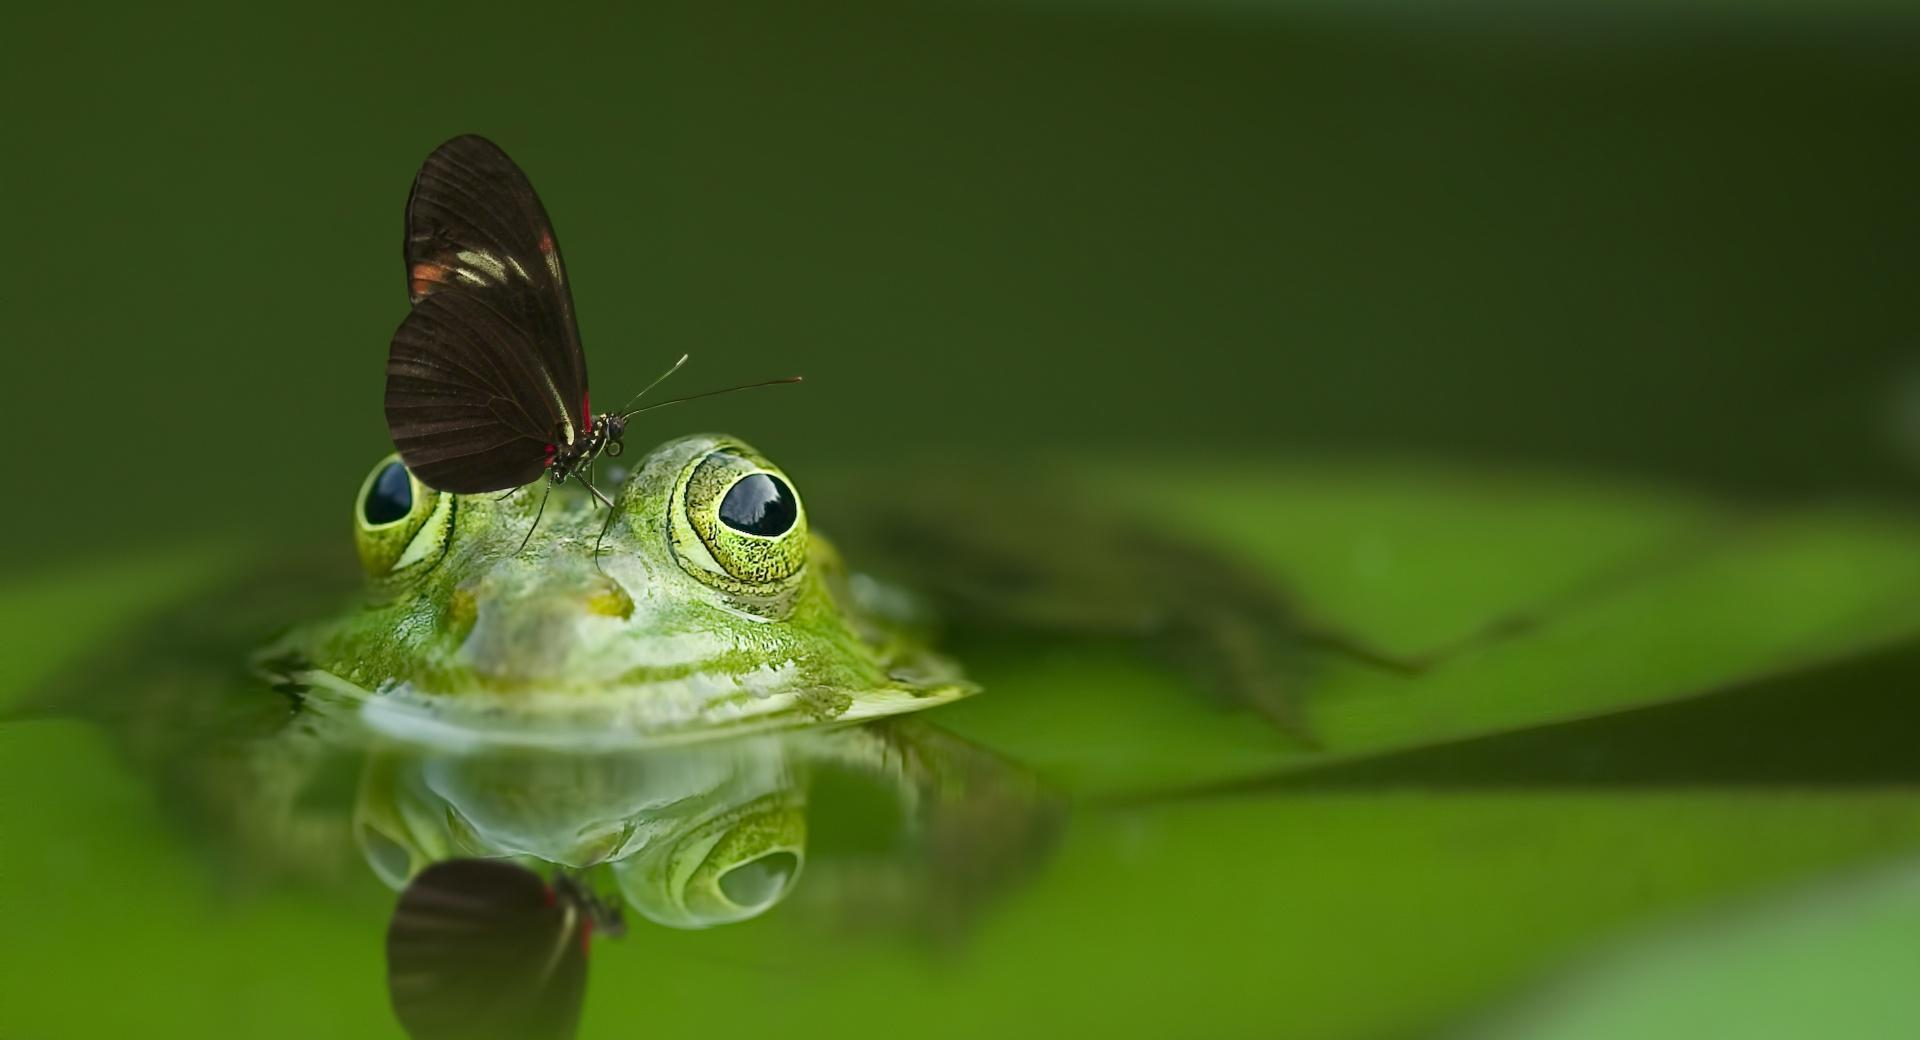 Butterfly on a Frog wallpapers HD quality